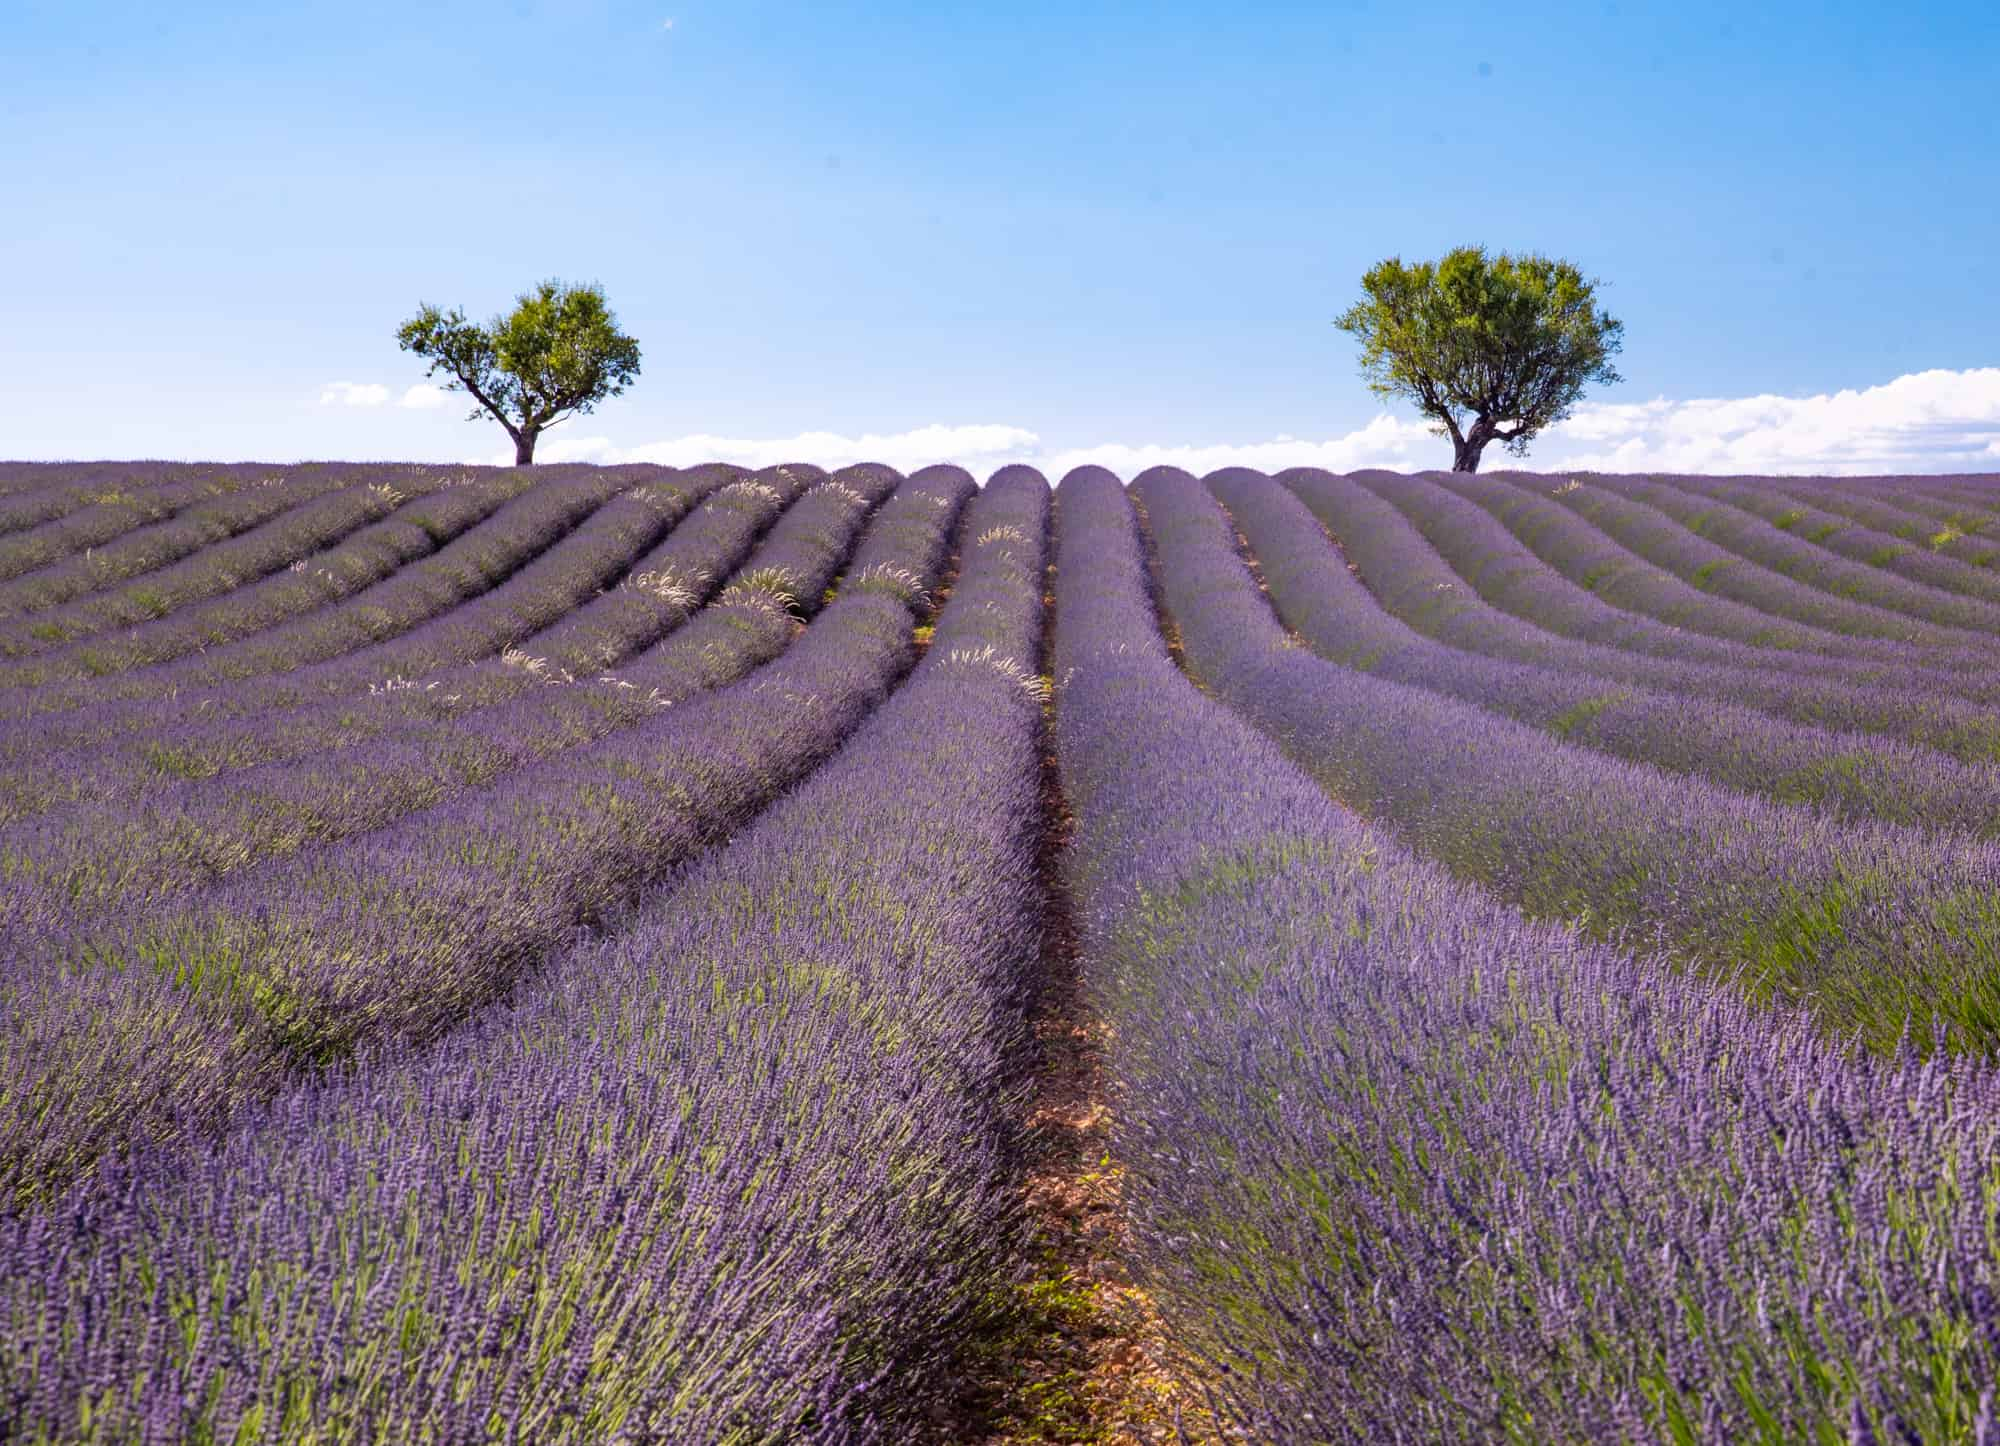 Valensole lavender fields in Provence, France